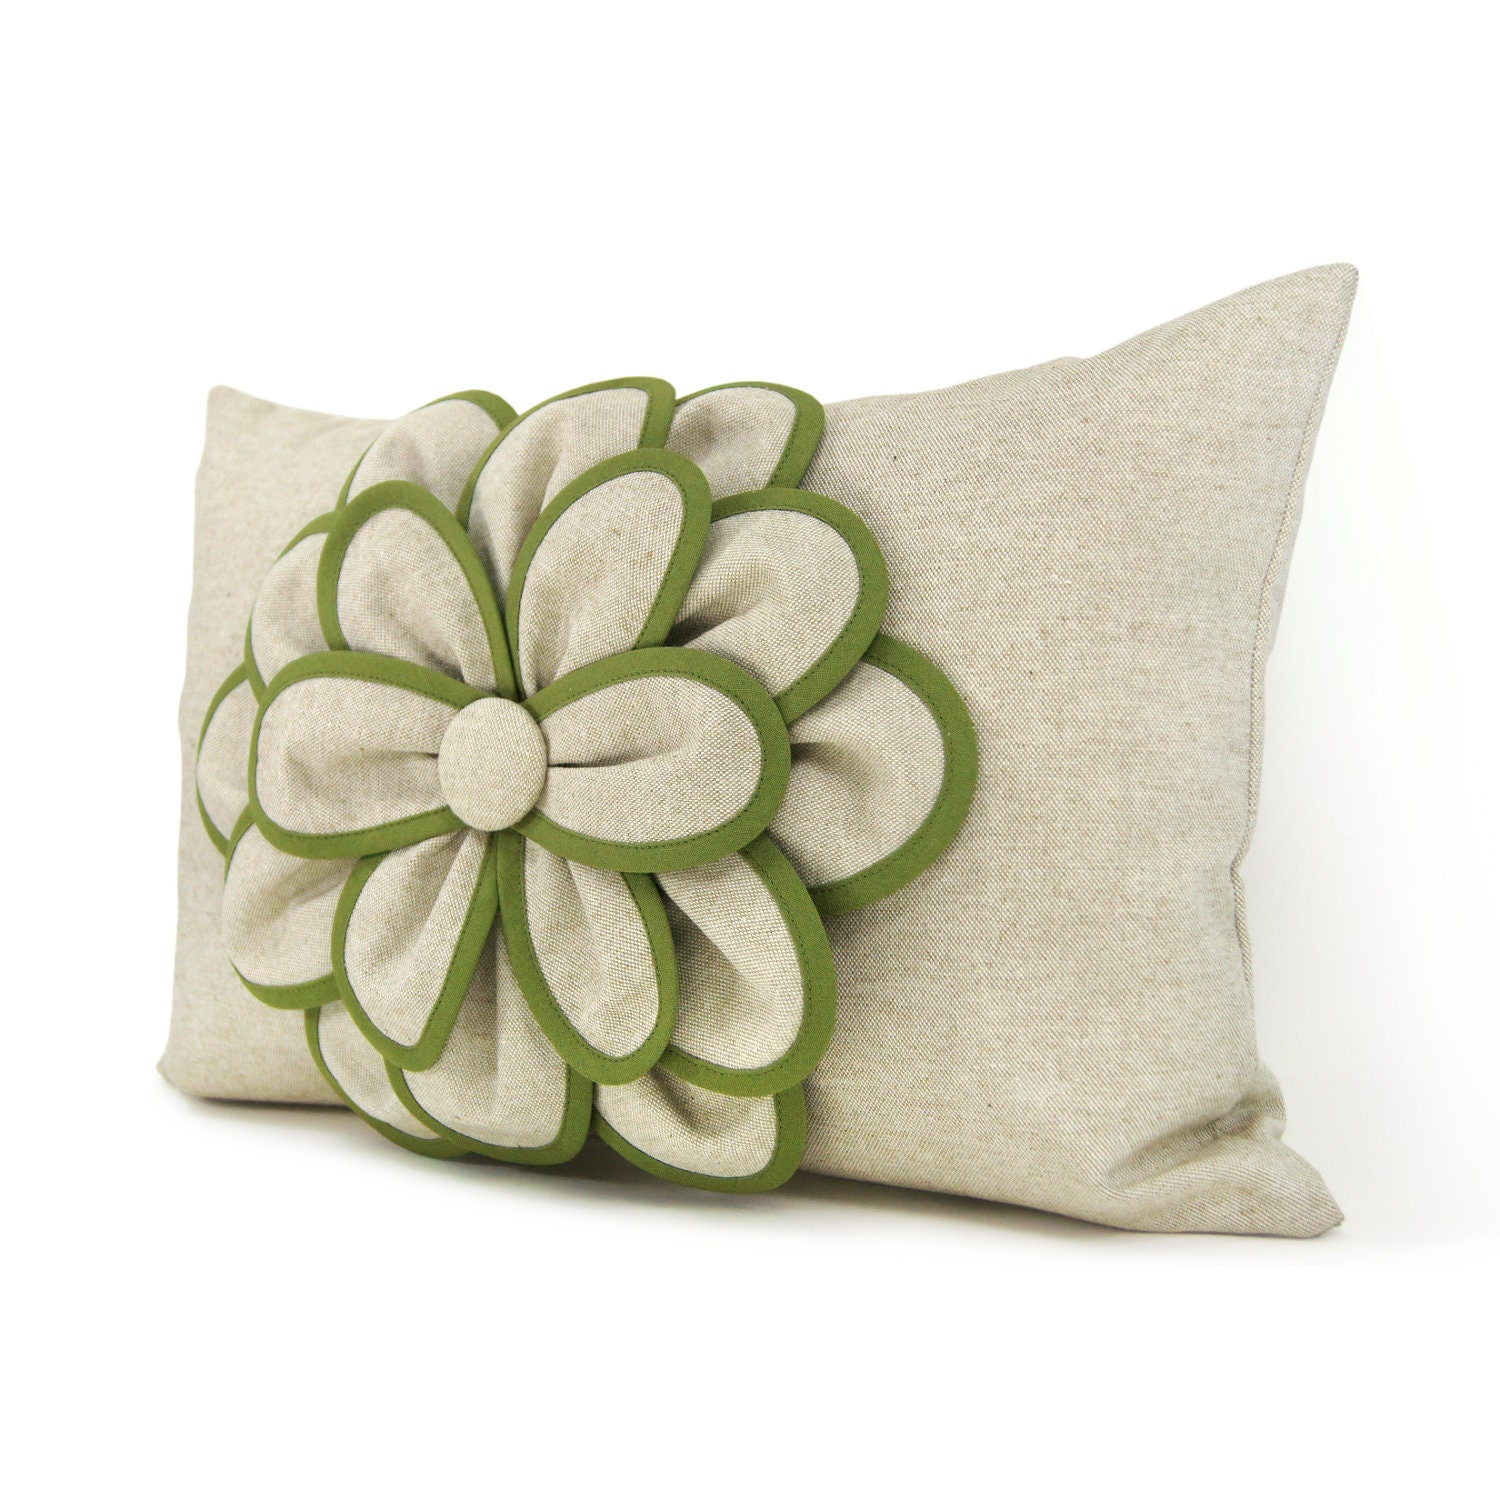 Decorative Pillow Cover 12x18 Shabby Chic Pillow French